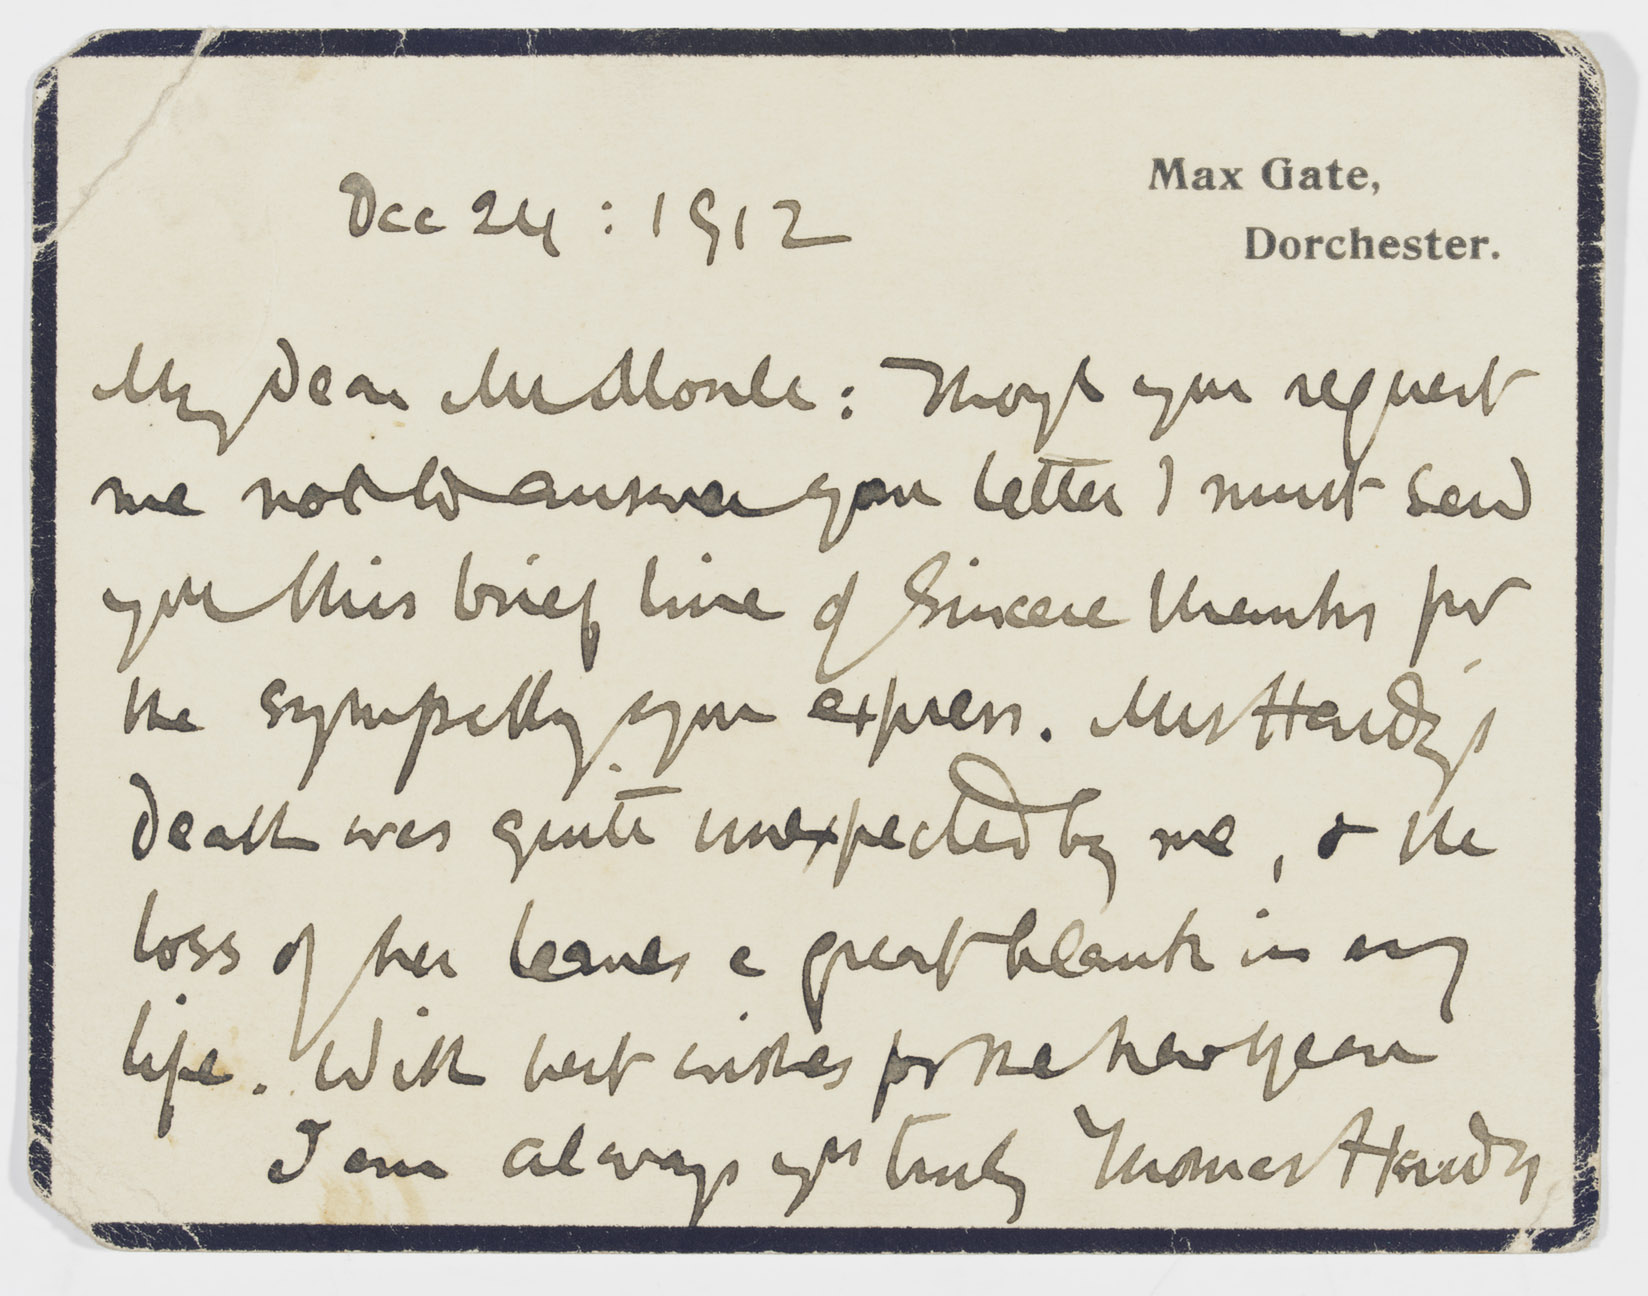 HARDY, Thomas (1840-1928). Autograph correspondence card signed to 'Mr Monk', Max Gate, 24 December 1912, ON HIS WIFE'S DEATH, writing to express thanks for a letter of condolence, 'Mrs Hardy's death was quite unexpected by me, & the loss of her leaves a great blank in my life', one page, oblong 12mo, on a mourning card (creased at corners).